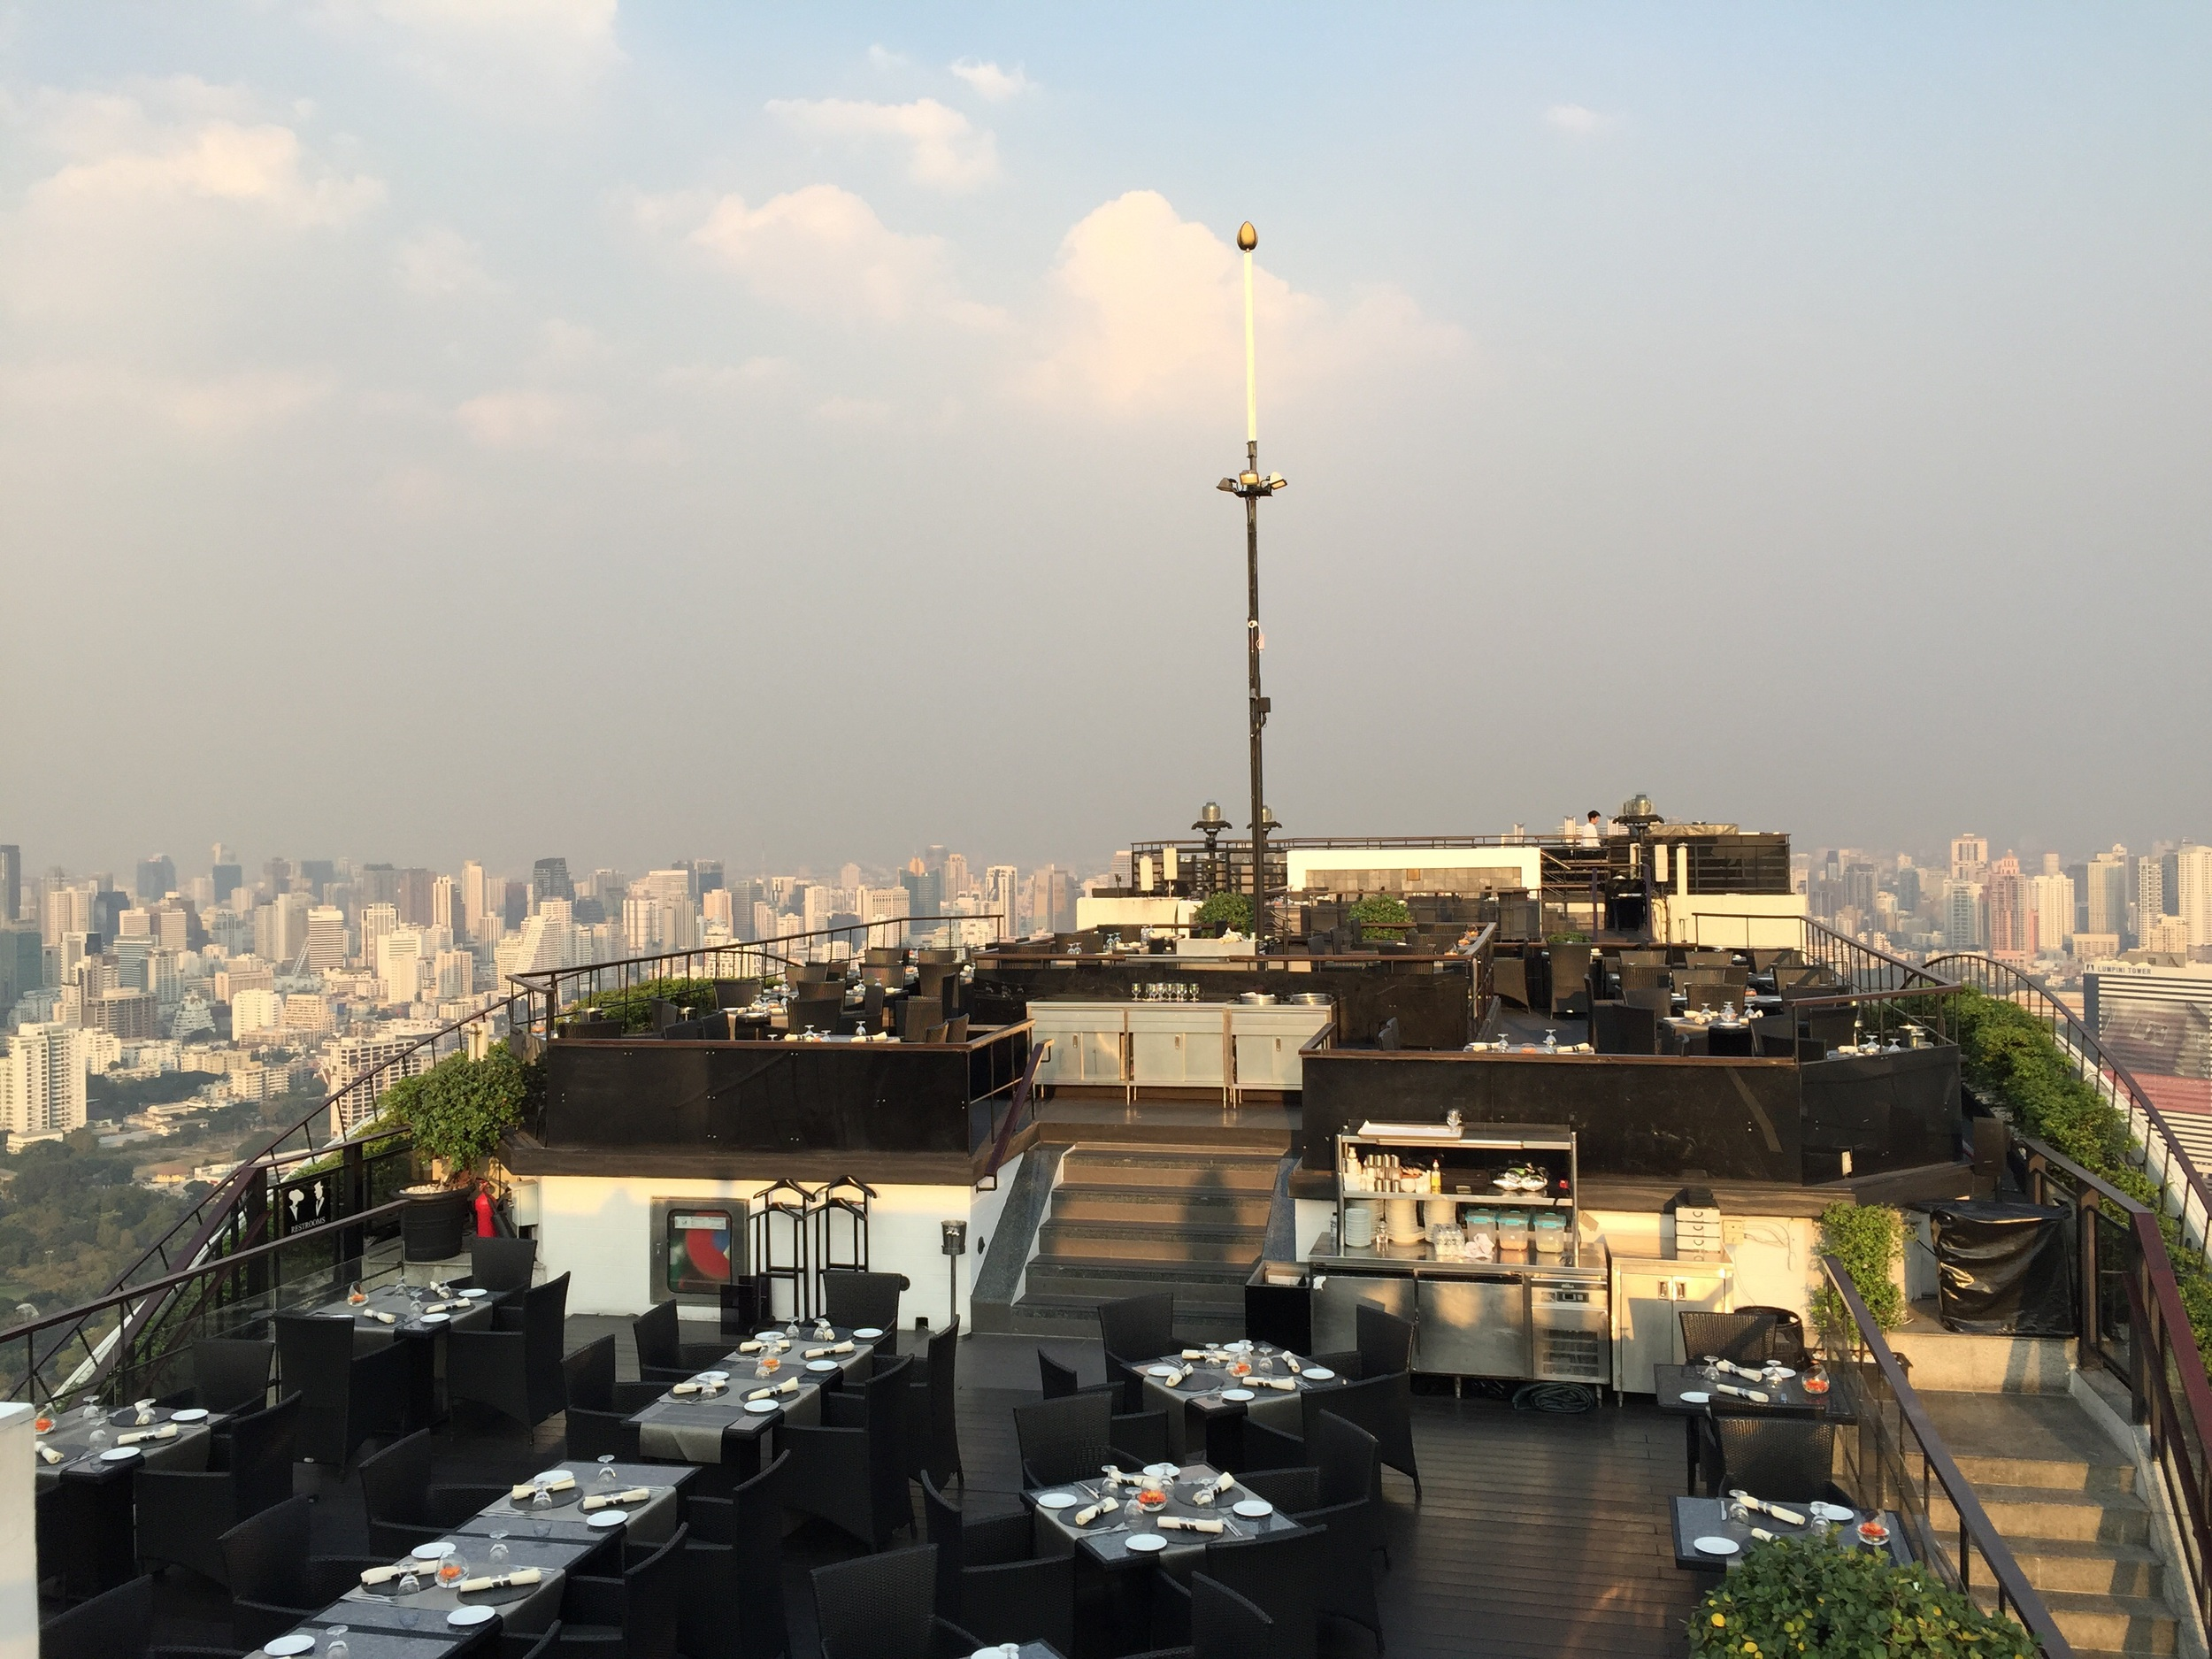 Bangkok is known for its sky bars. If you're in the city, do yourself a favor and hit one sky bar for a sunset. This view is courtesy of the Vertigo & Moon Bar in the Banyan Hotel.